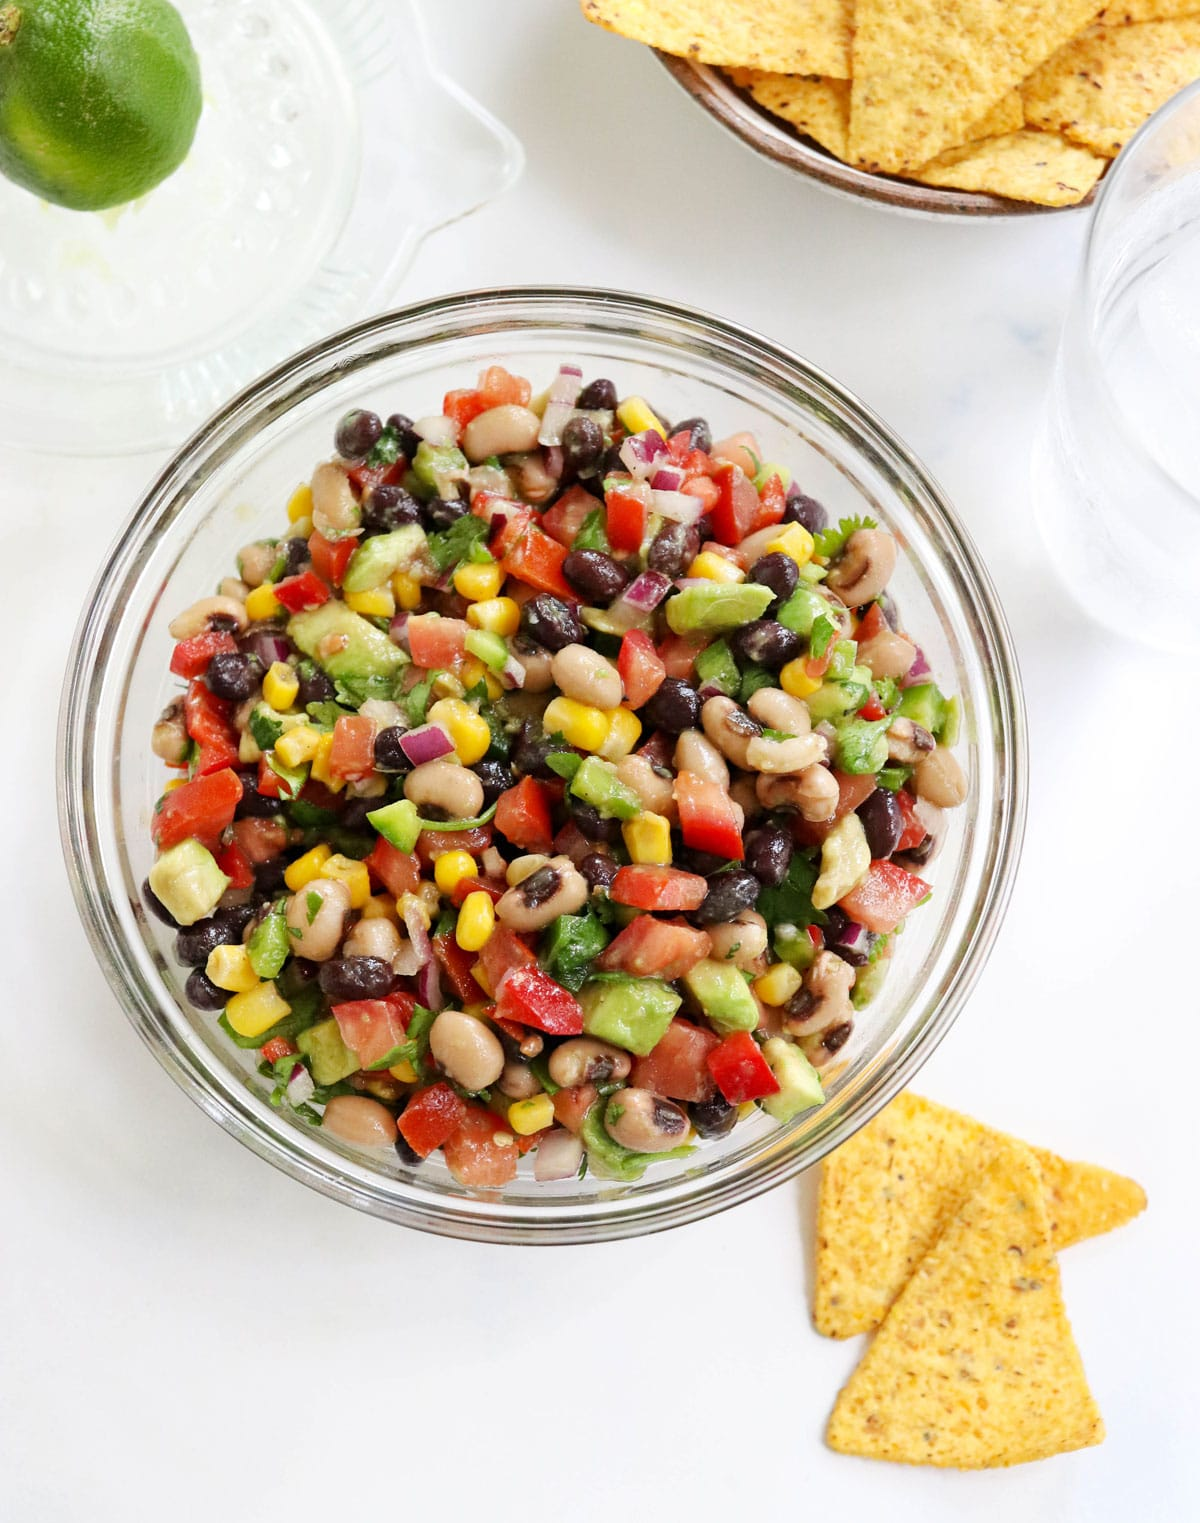 cowboy caviar in bowl with side of chips